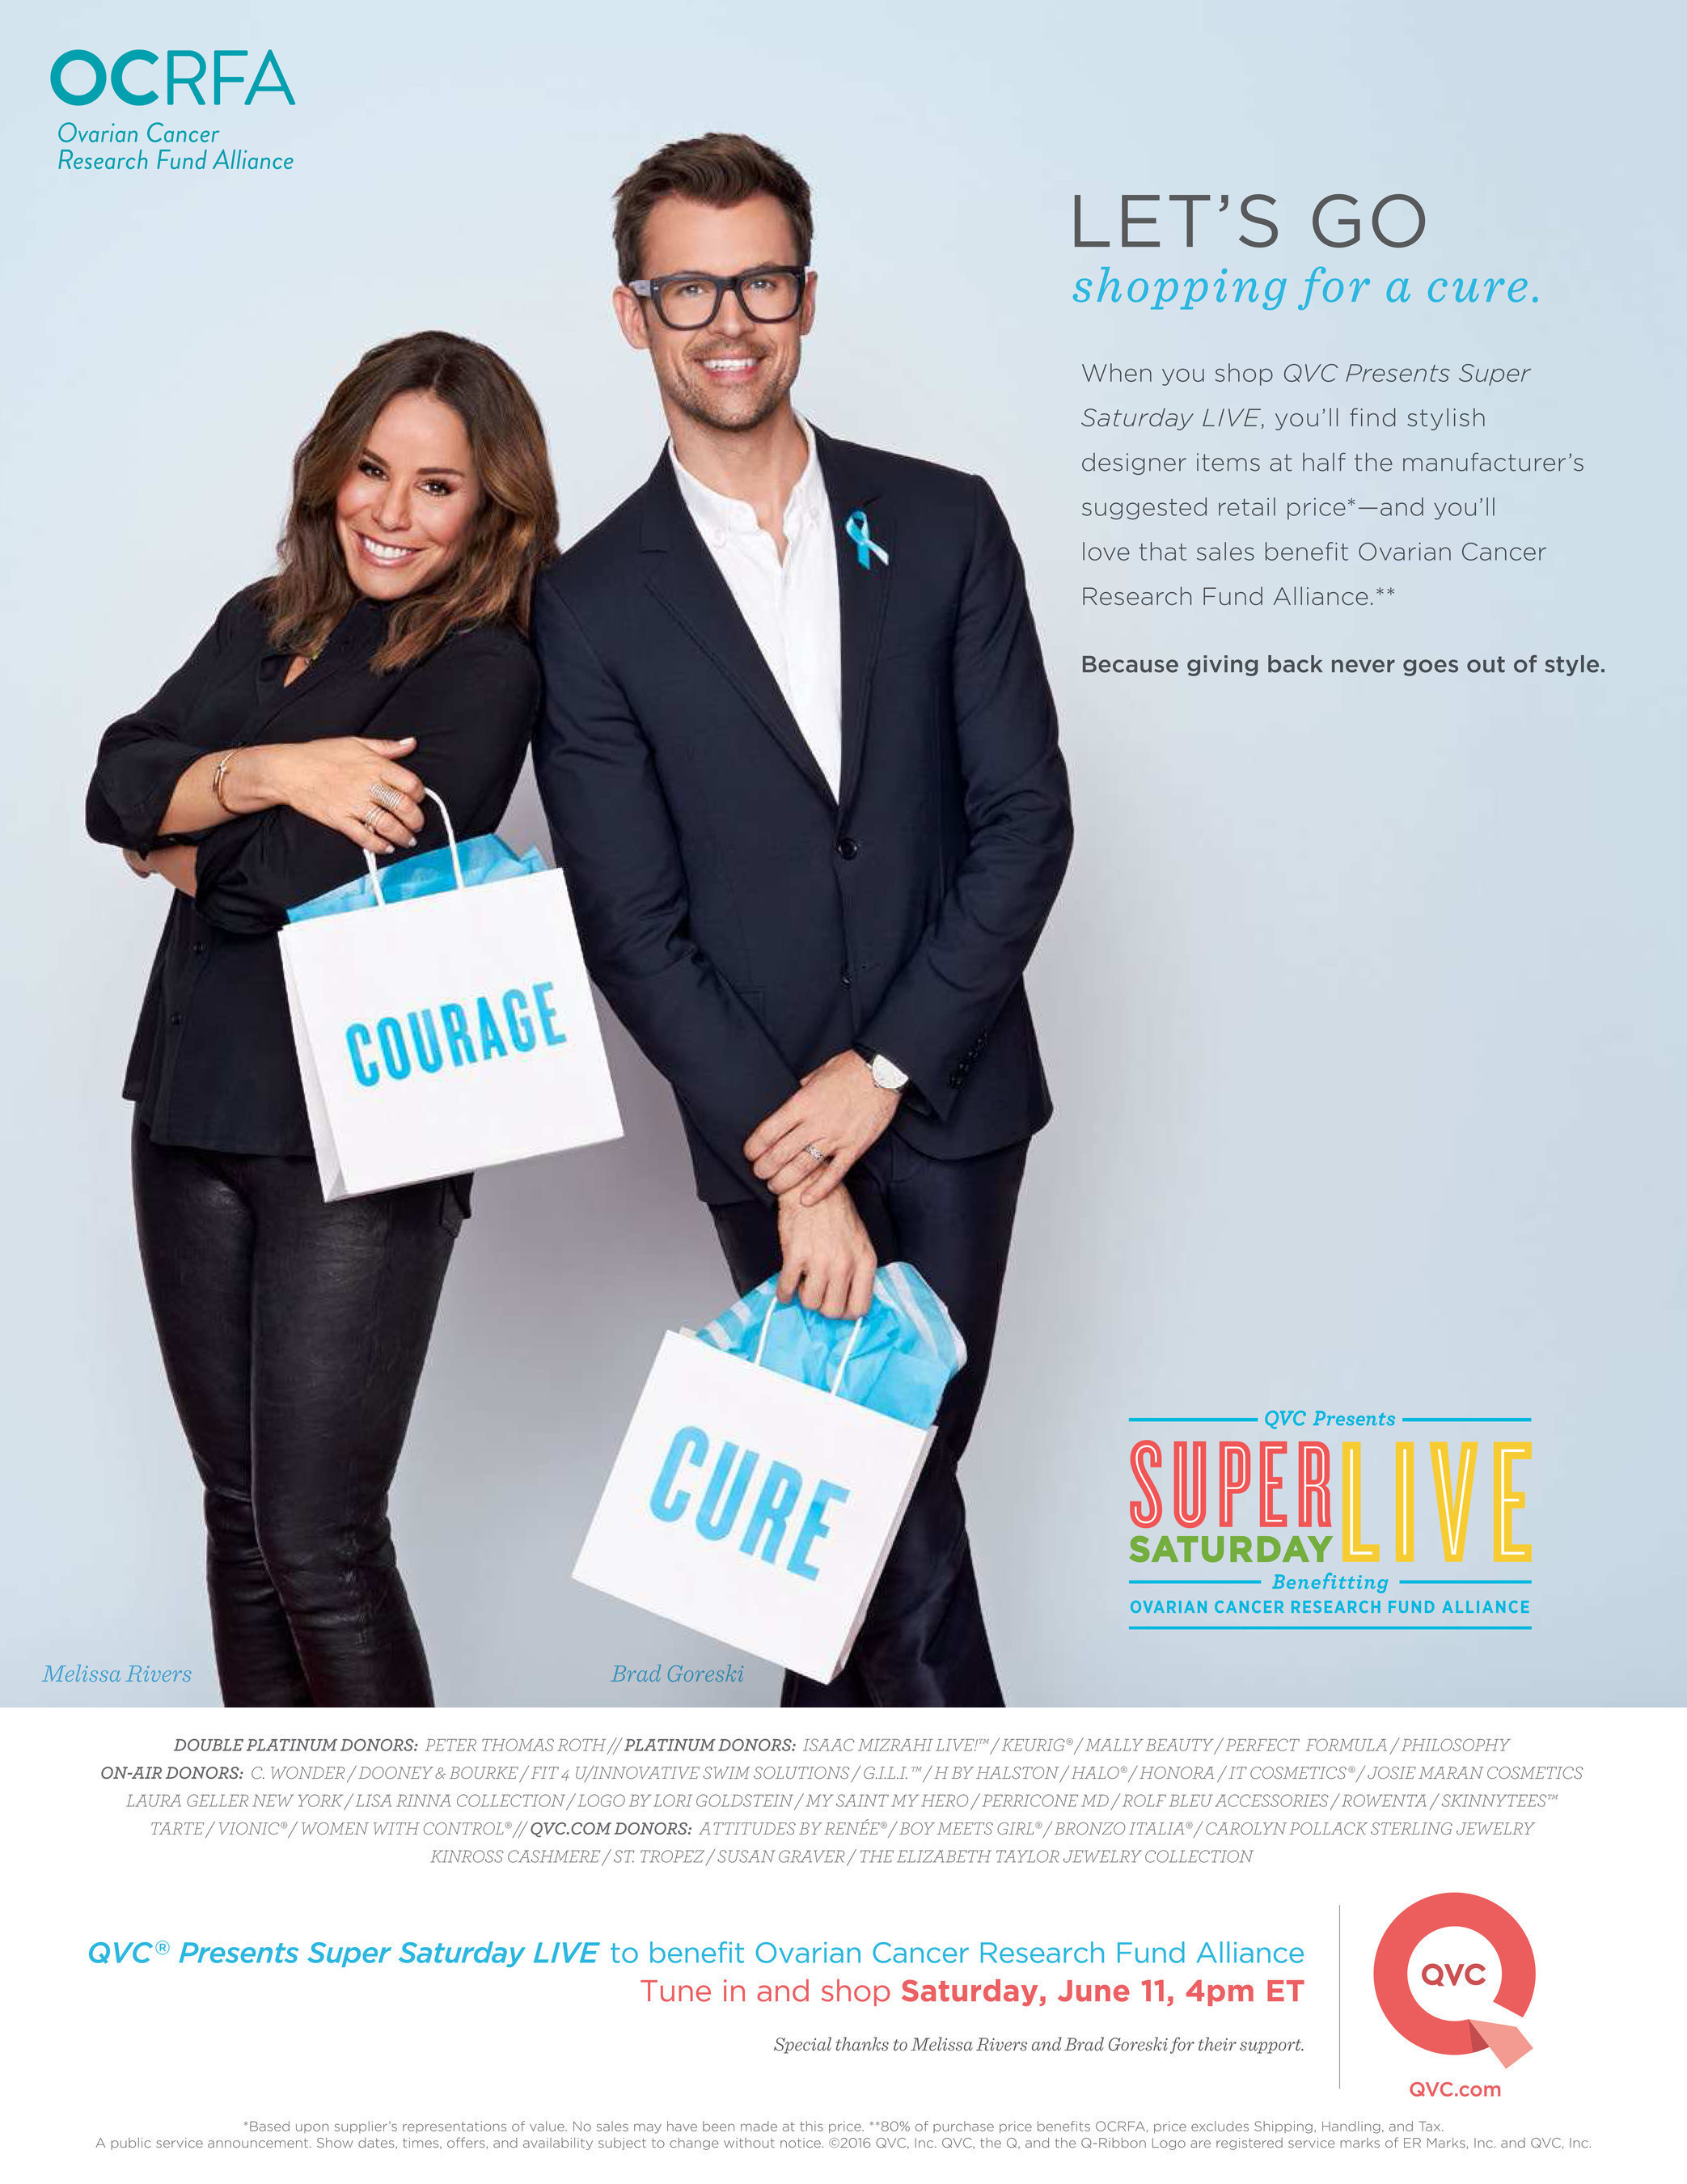 Sound The Alarm - Brad Goreski And Melissa Rivers Are Policing For A Good Cause